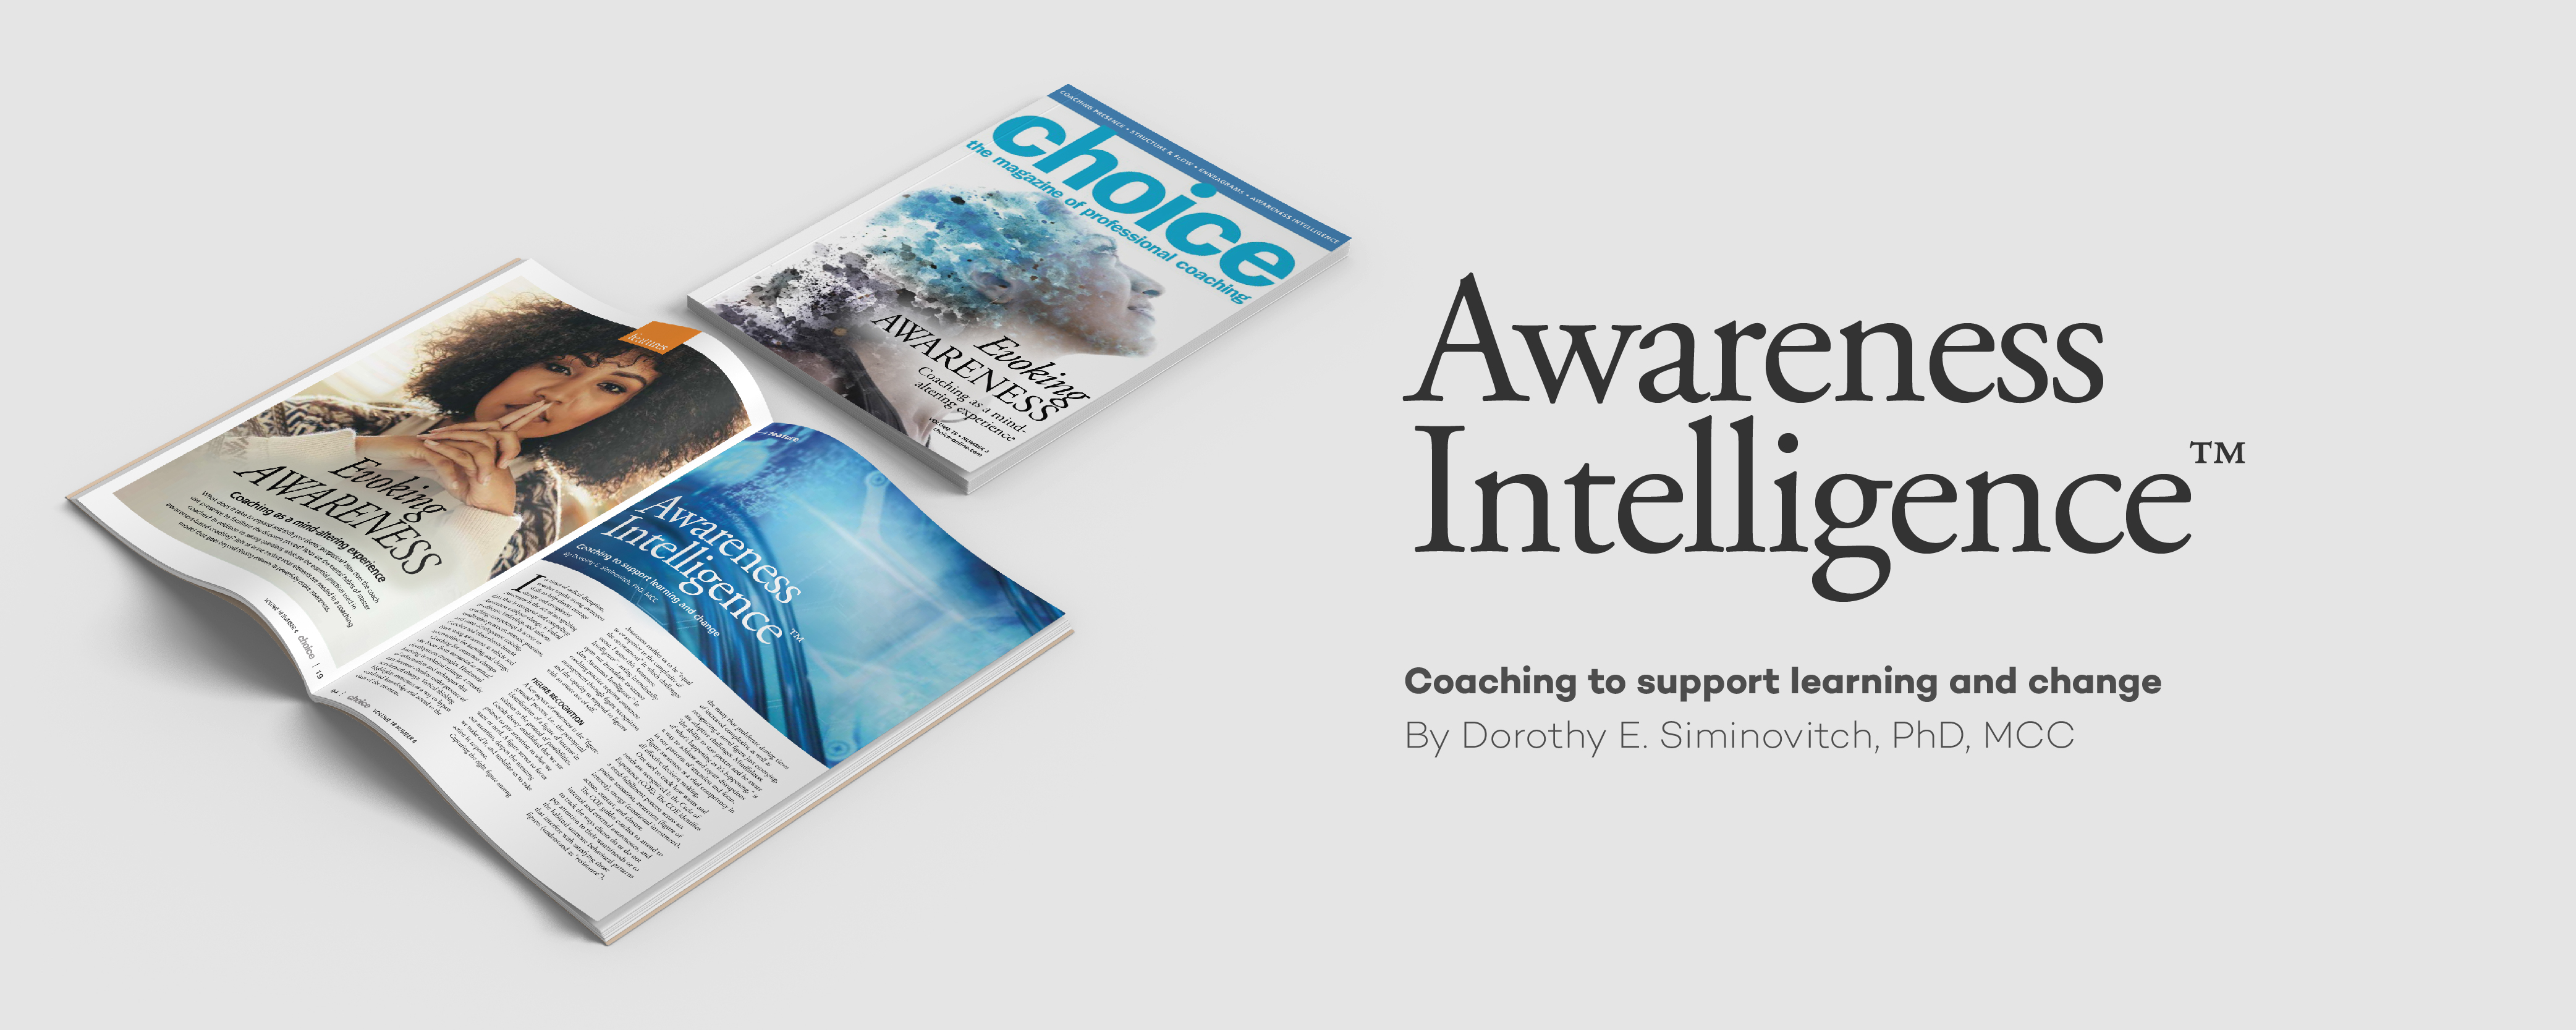 Awareness Intelligence by Dorothy Siminovitch